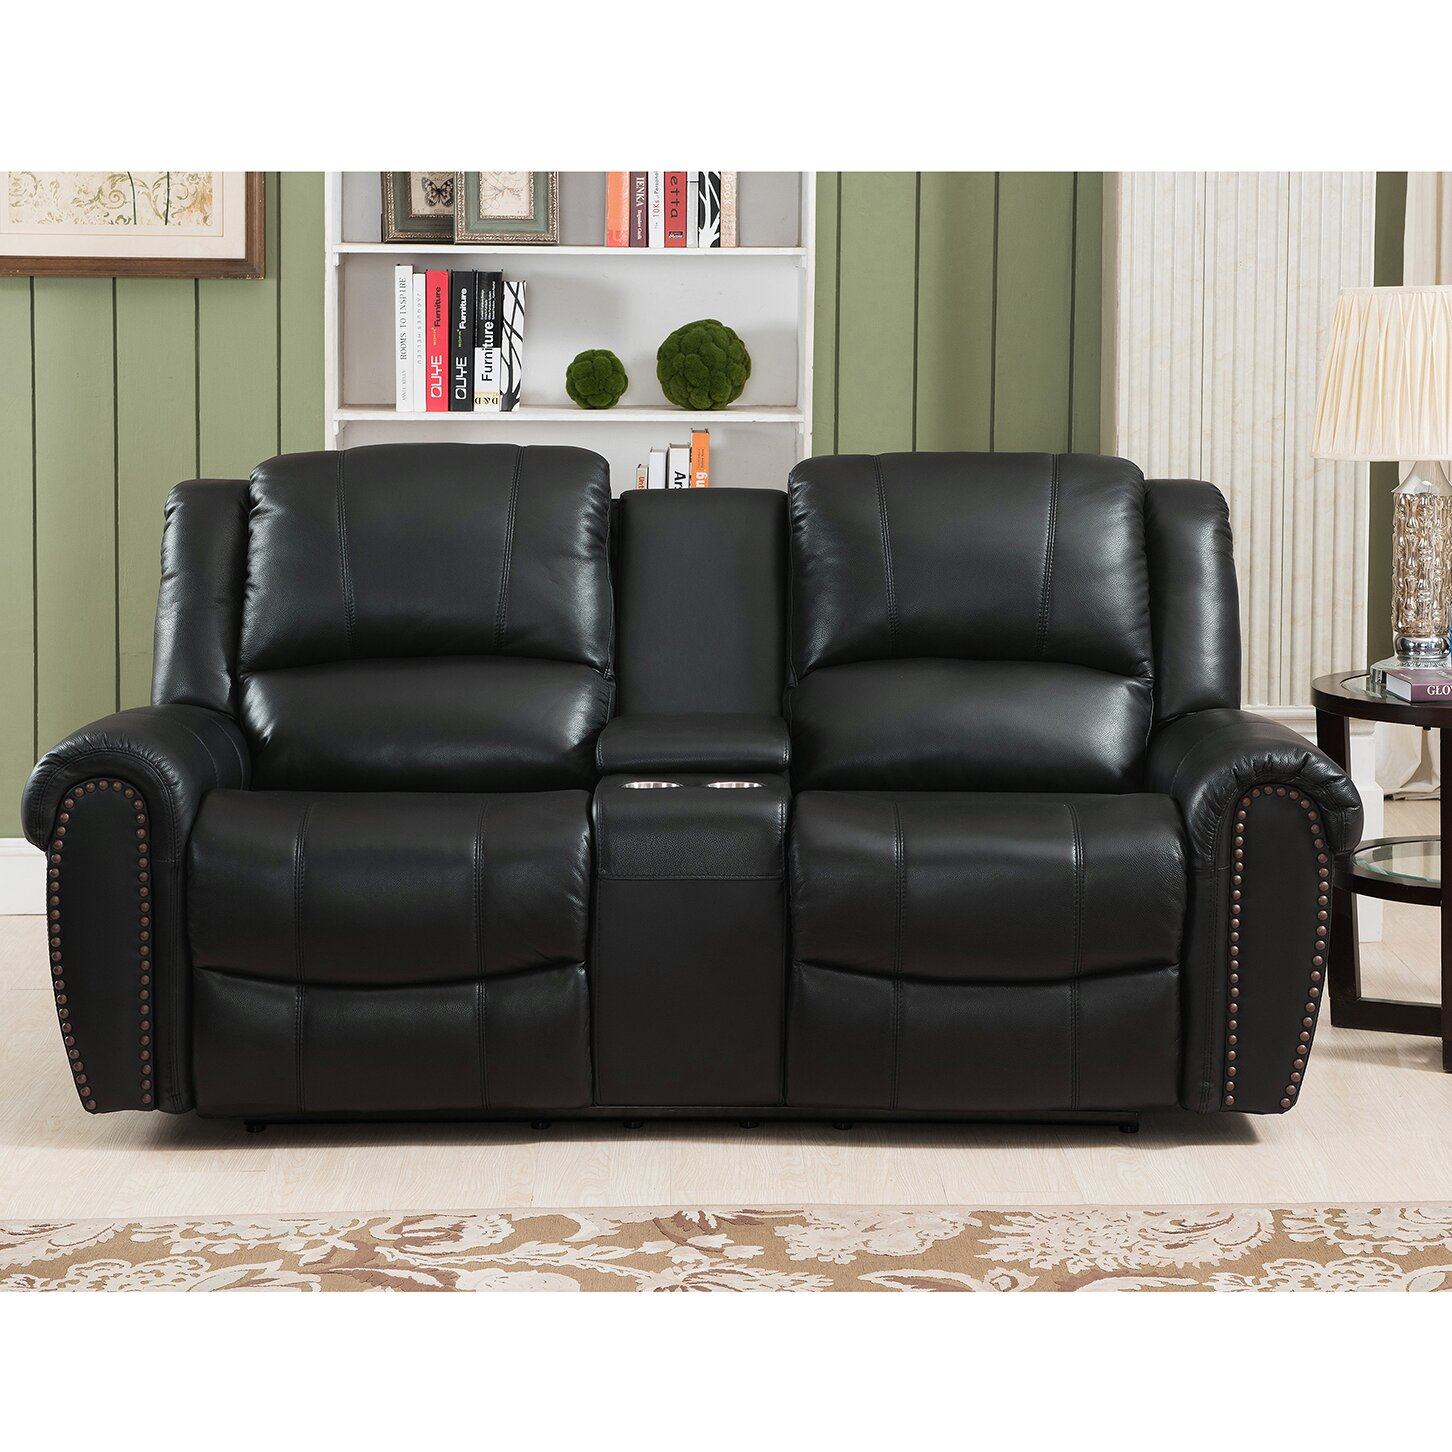 3 piece reclining living room set houston 3 leather recliner living room set wayfair 23988